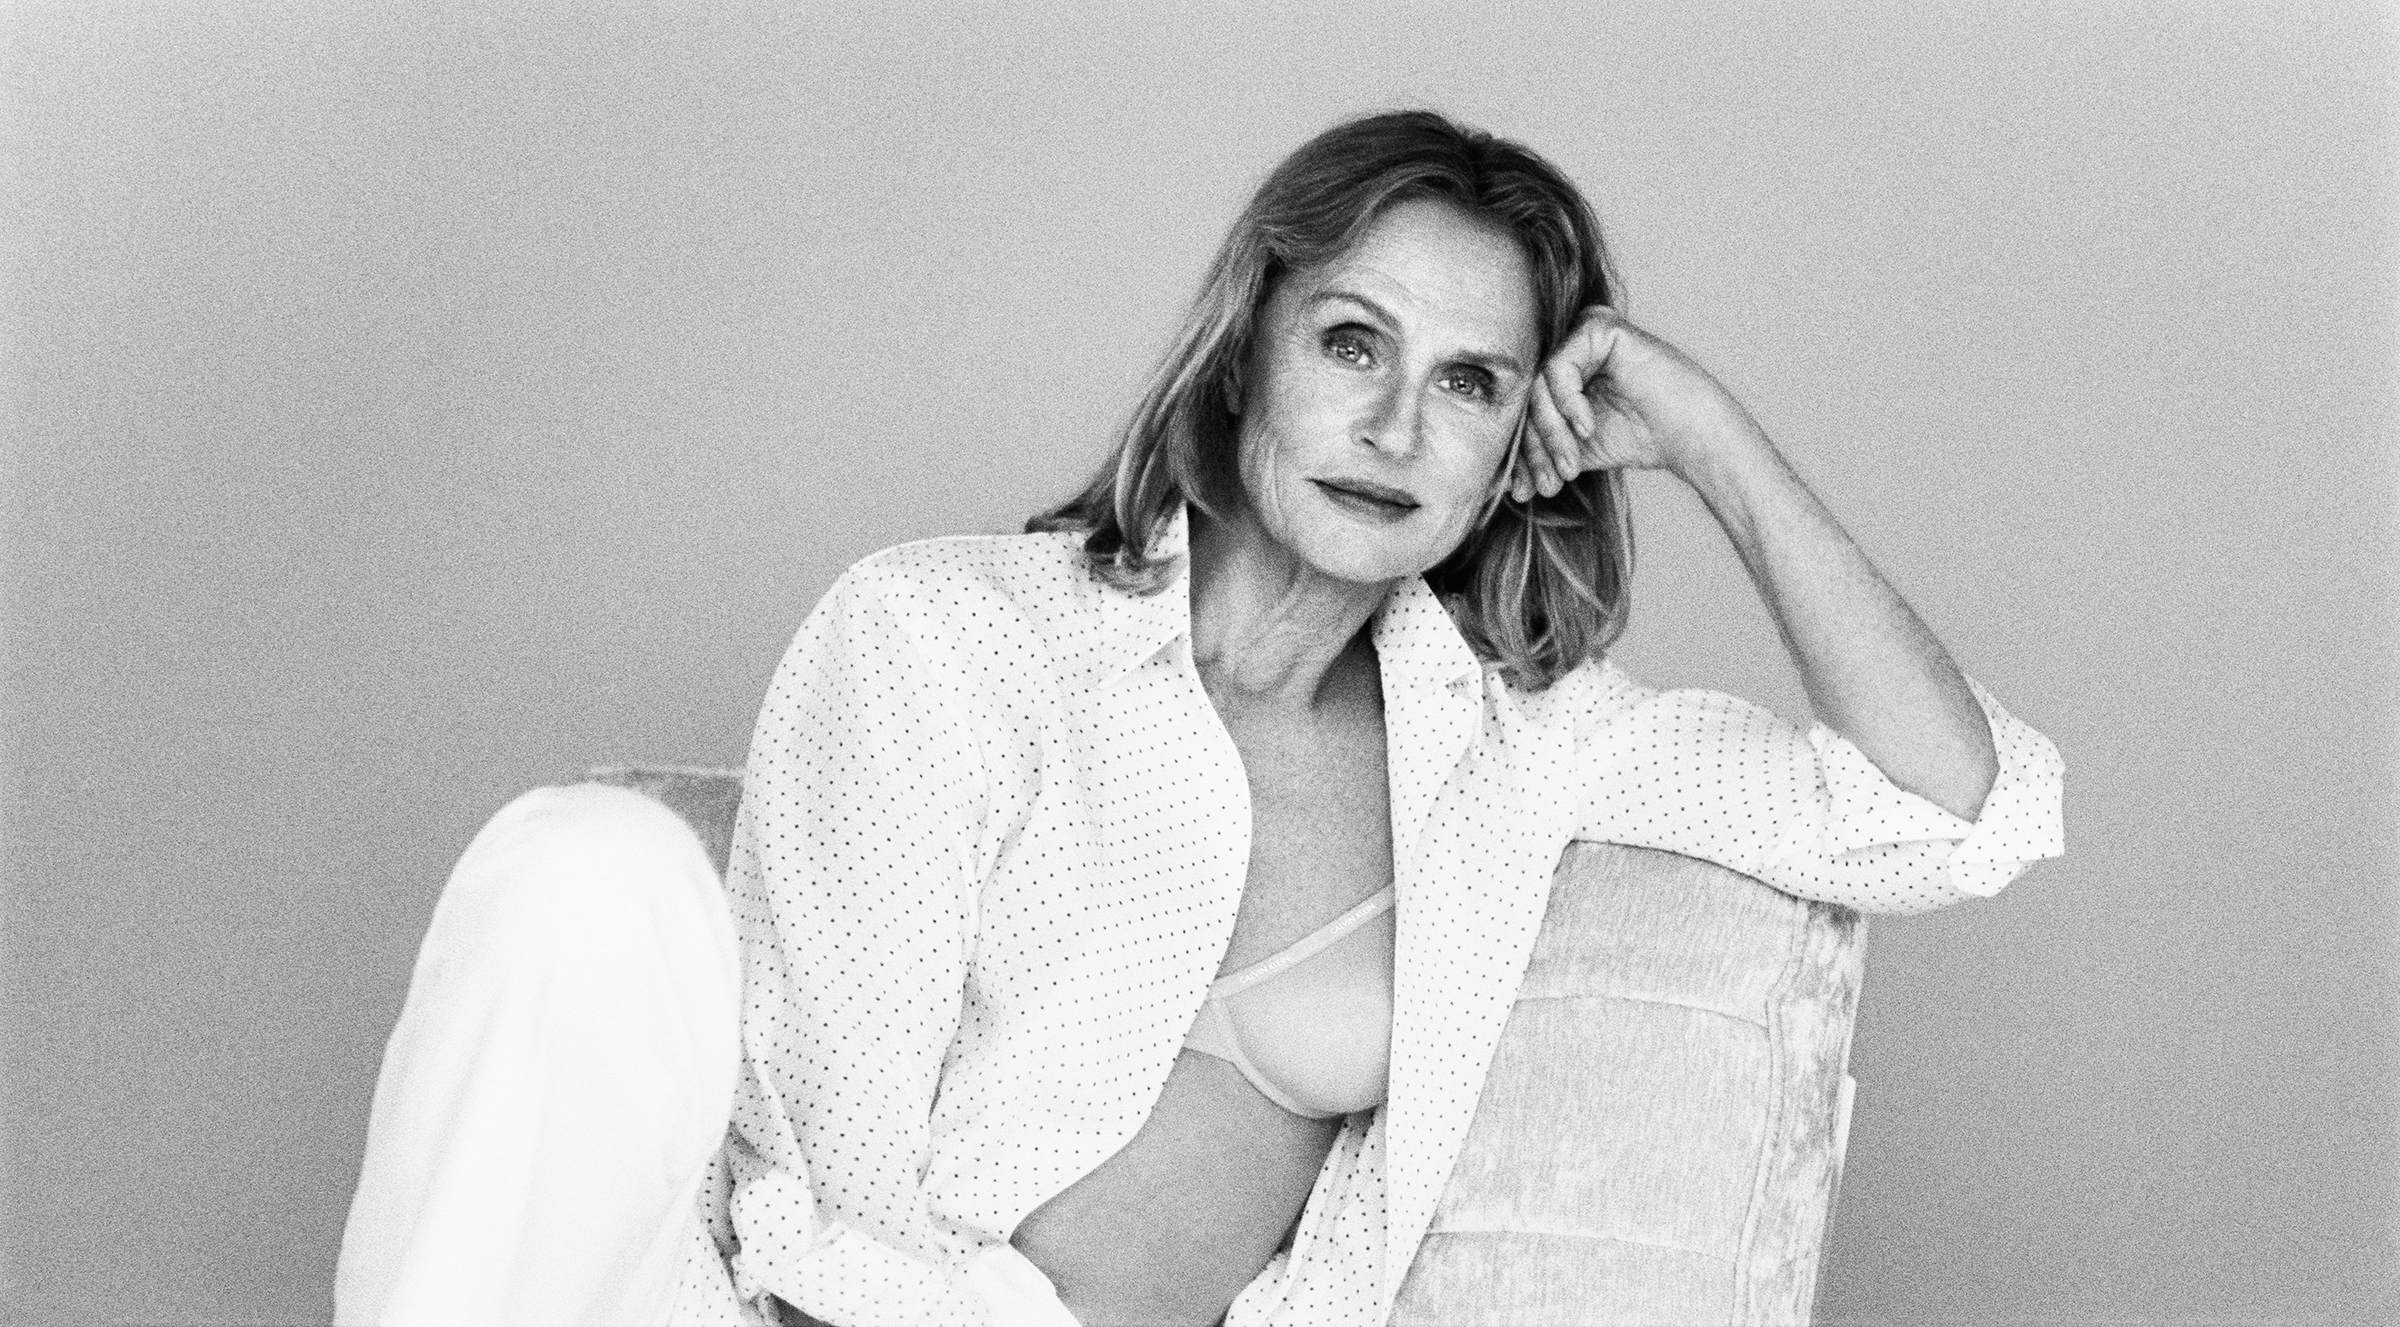 ACTRESS LAUREN HUTTON WEARS CALVIN KLEIN UNDERWEAR: SHEER MARQUISETTE DEMI LIGHTLY LINED BRA. (Calvin Klein)